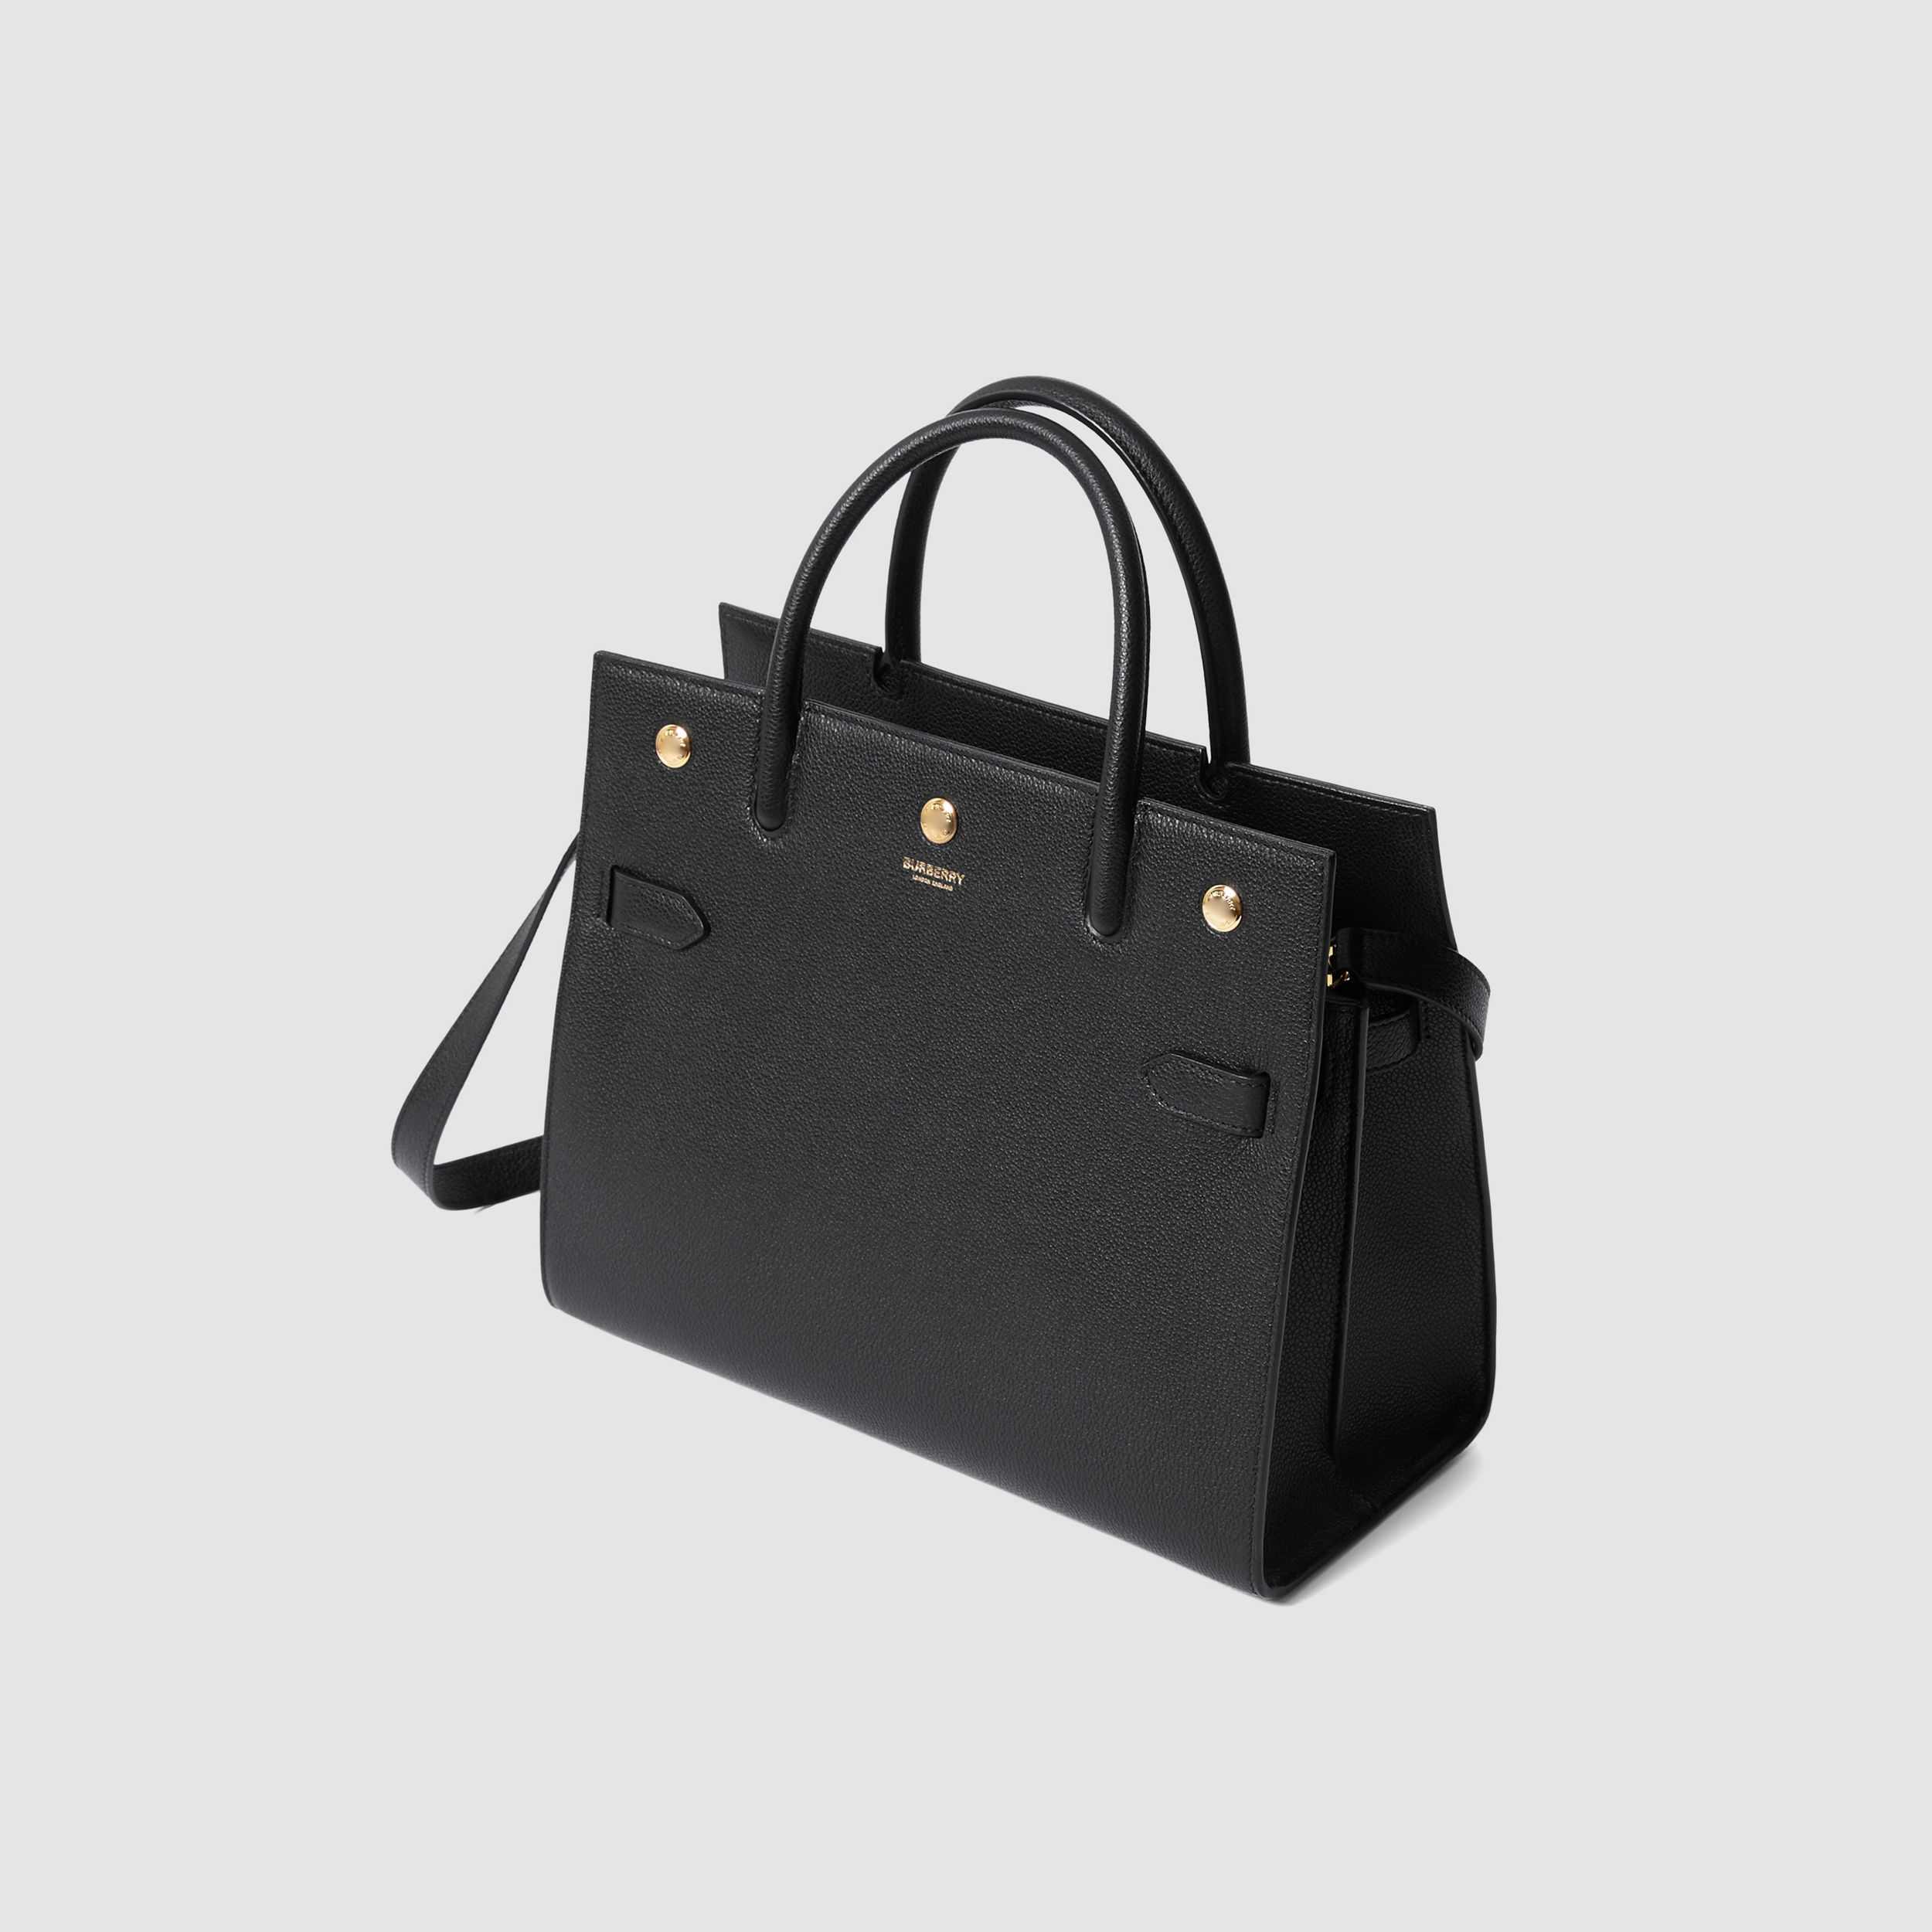 Small Leather Two-handle Title Bag in Black - Women | Burberry - 4